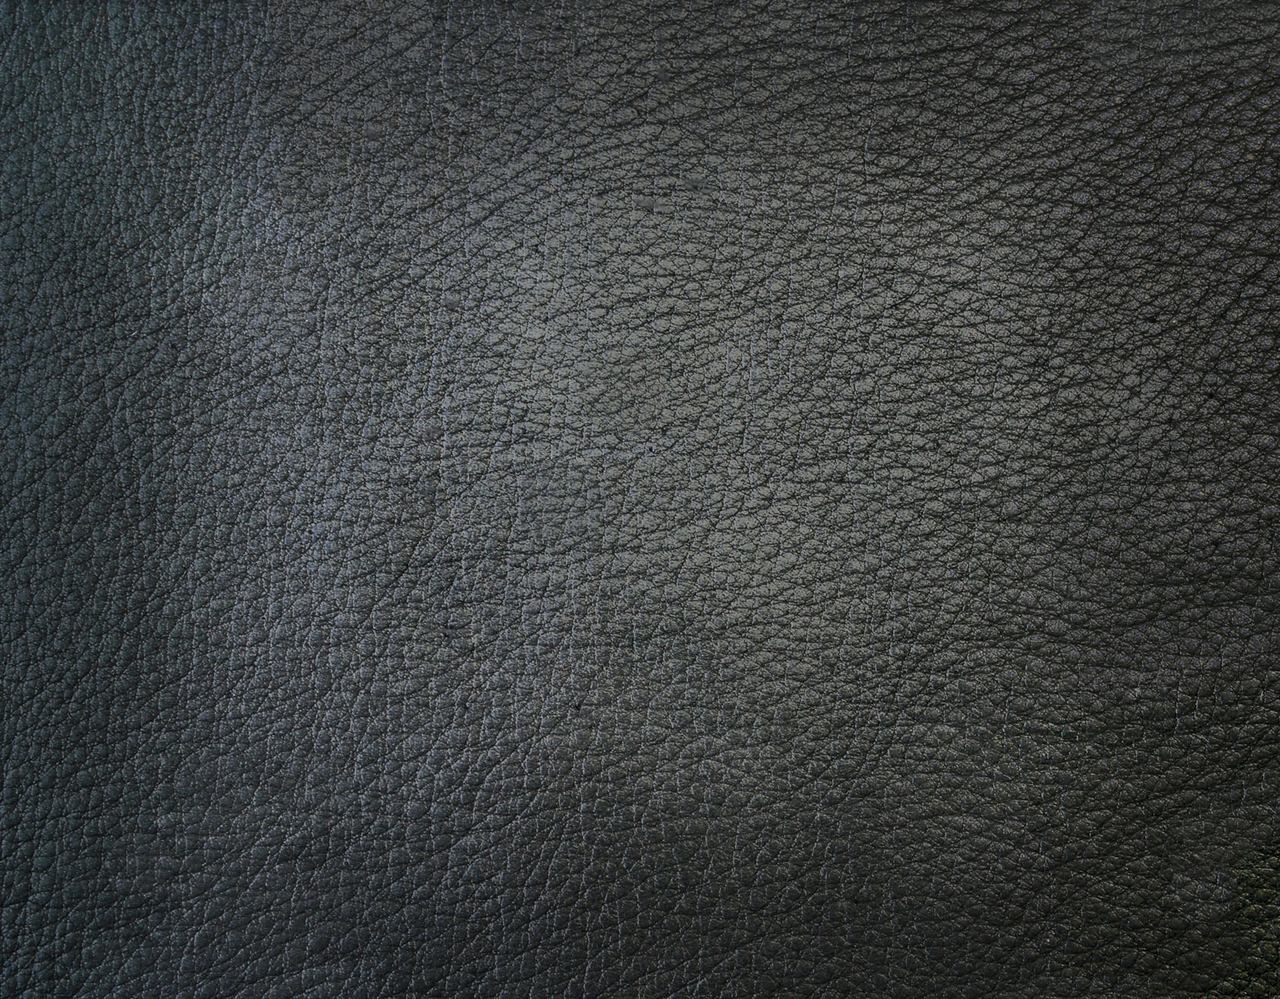 Desktop Images - Leather, Flossie Josephson